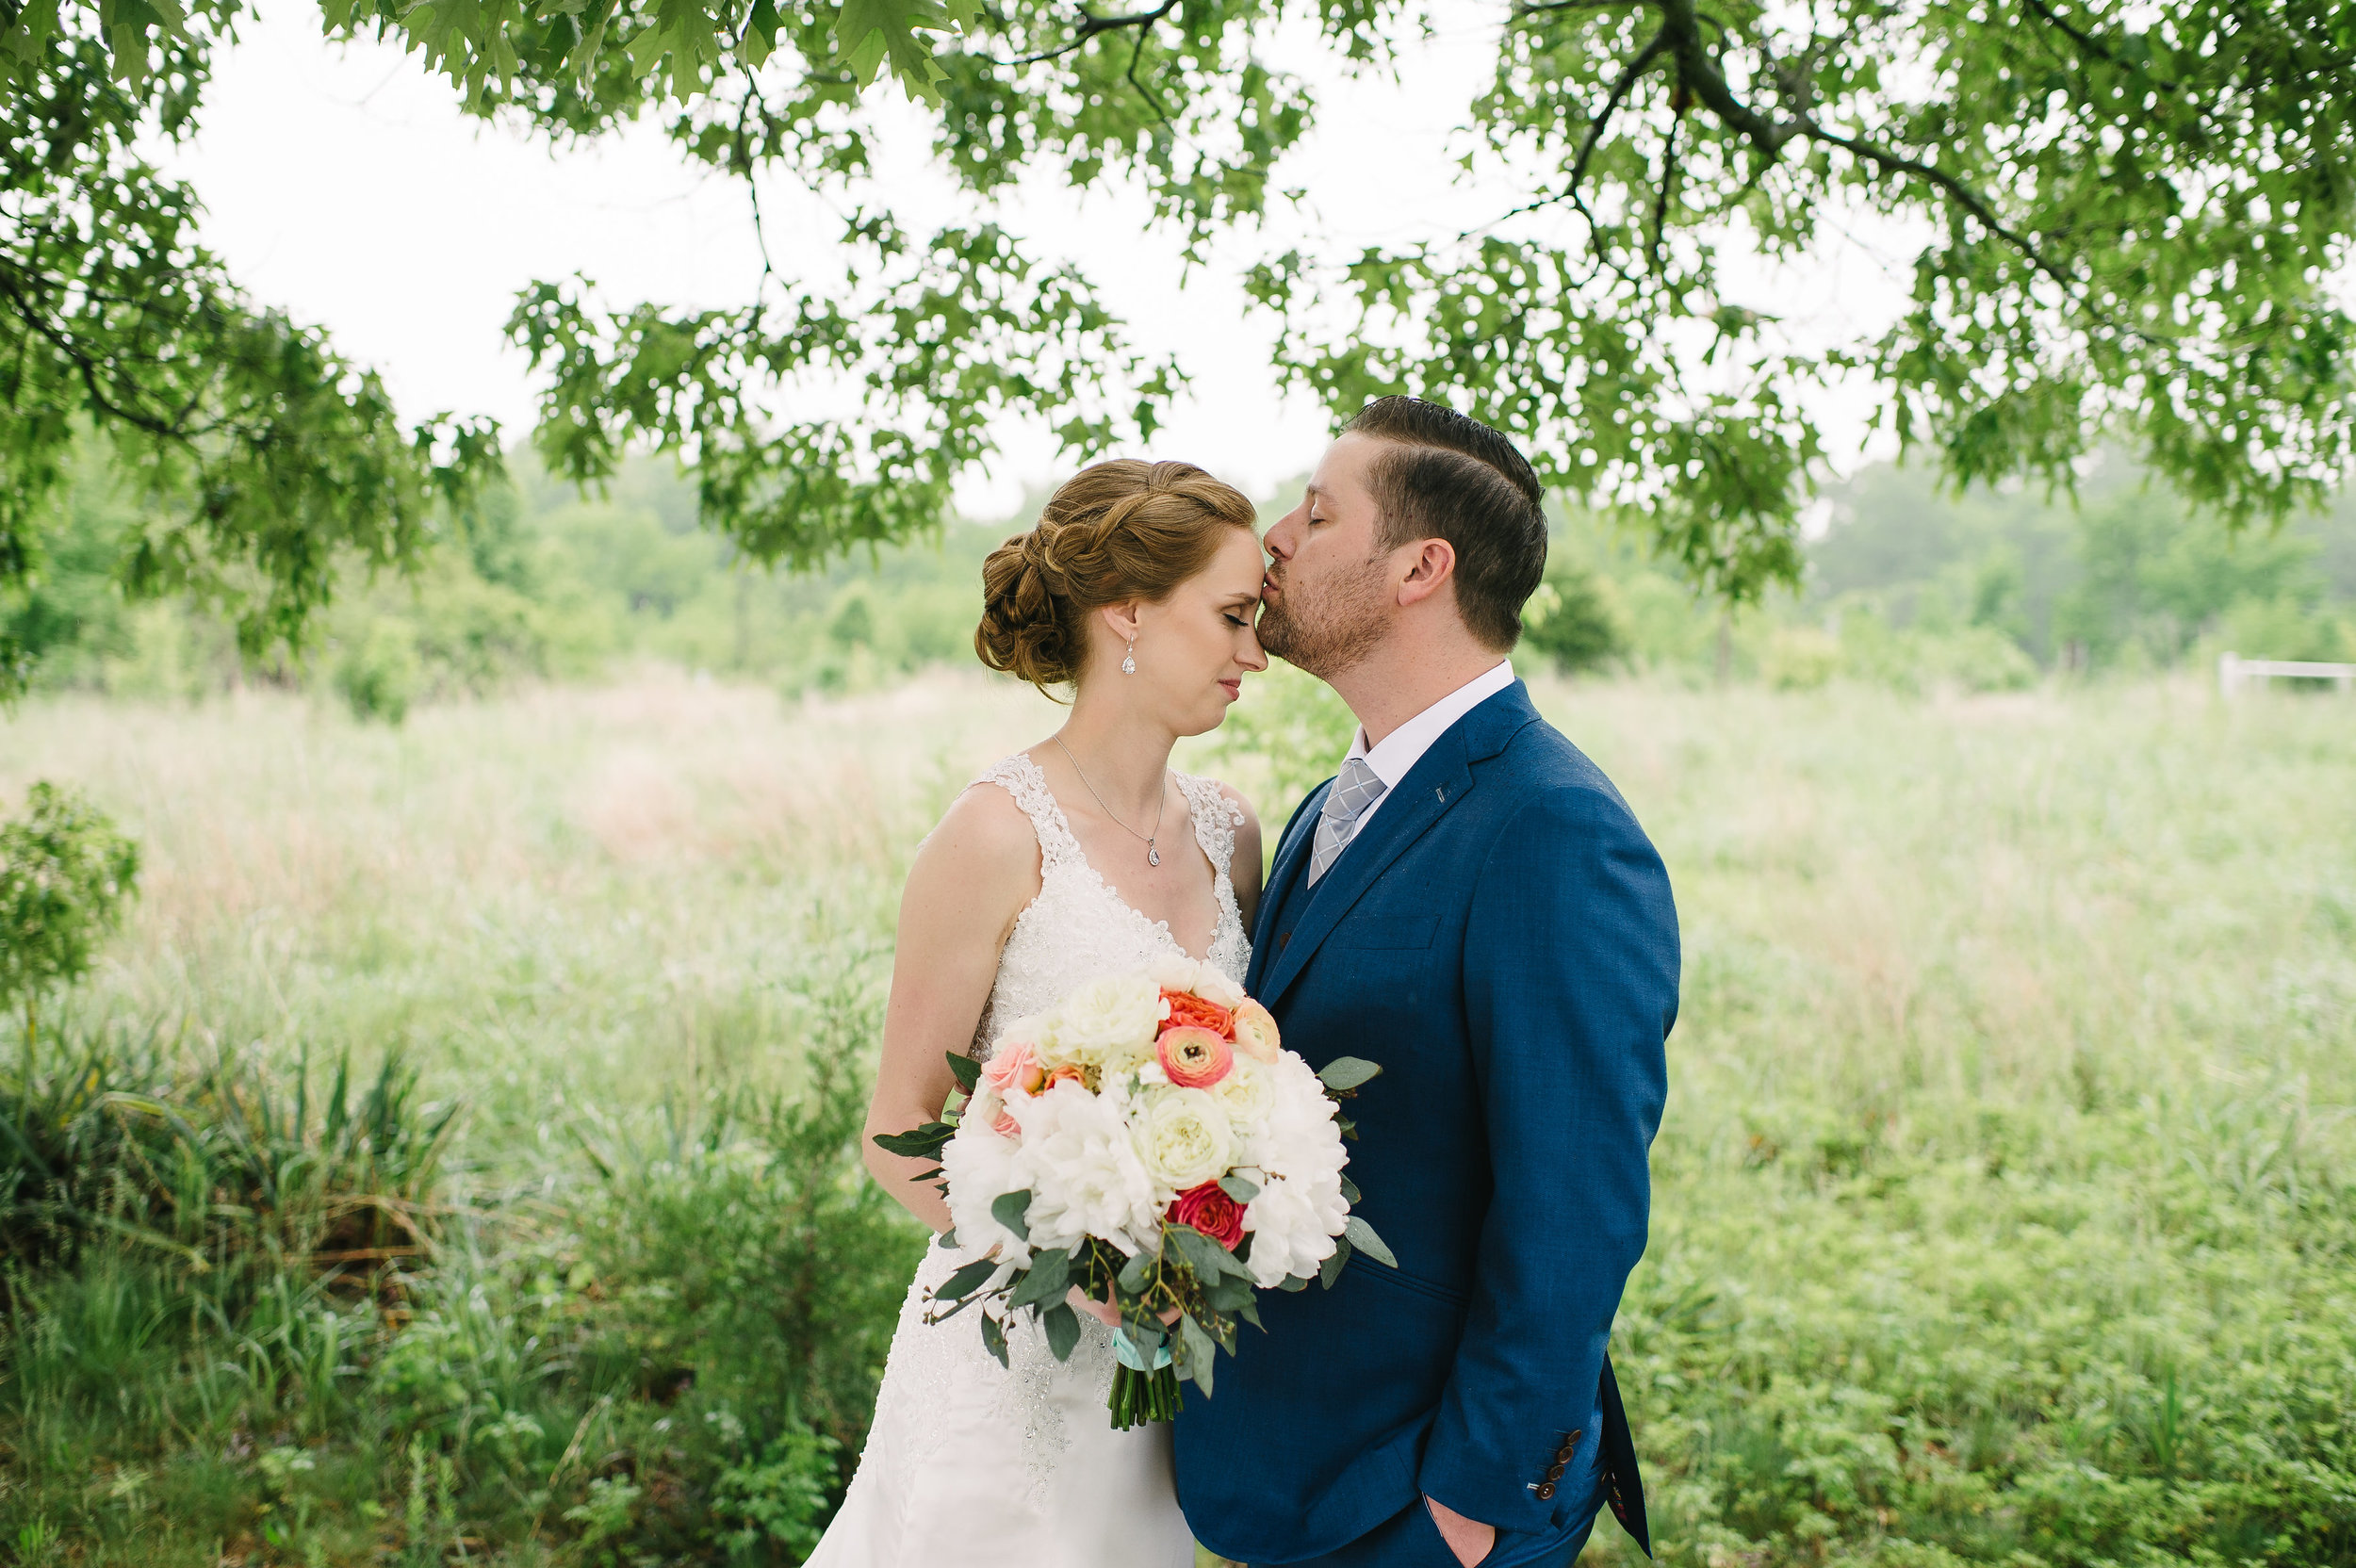 Emily & Brandon - CBF Environmental Center | Annapolis, MD